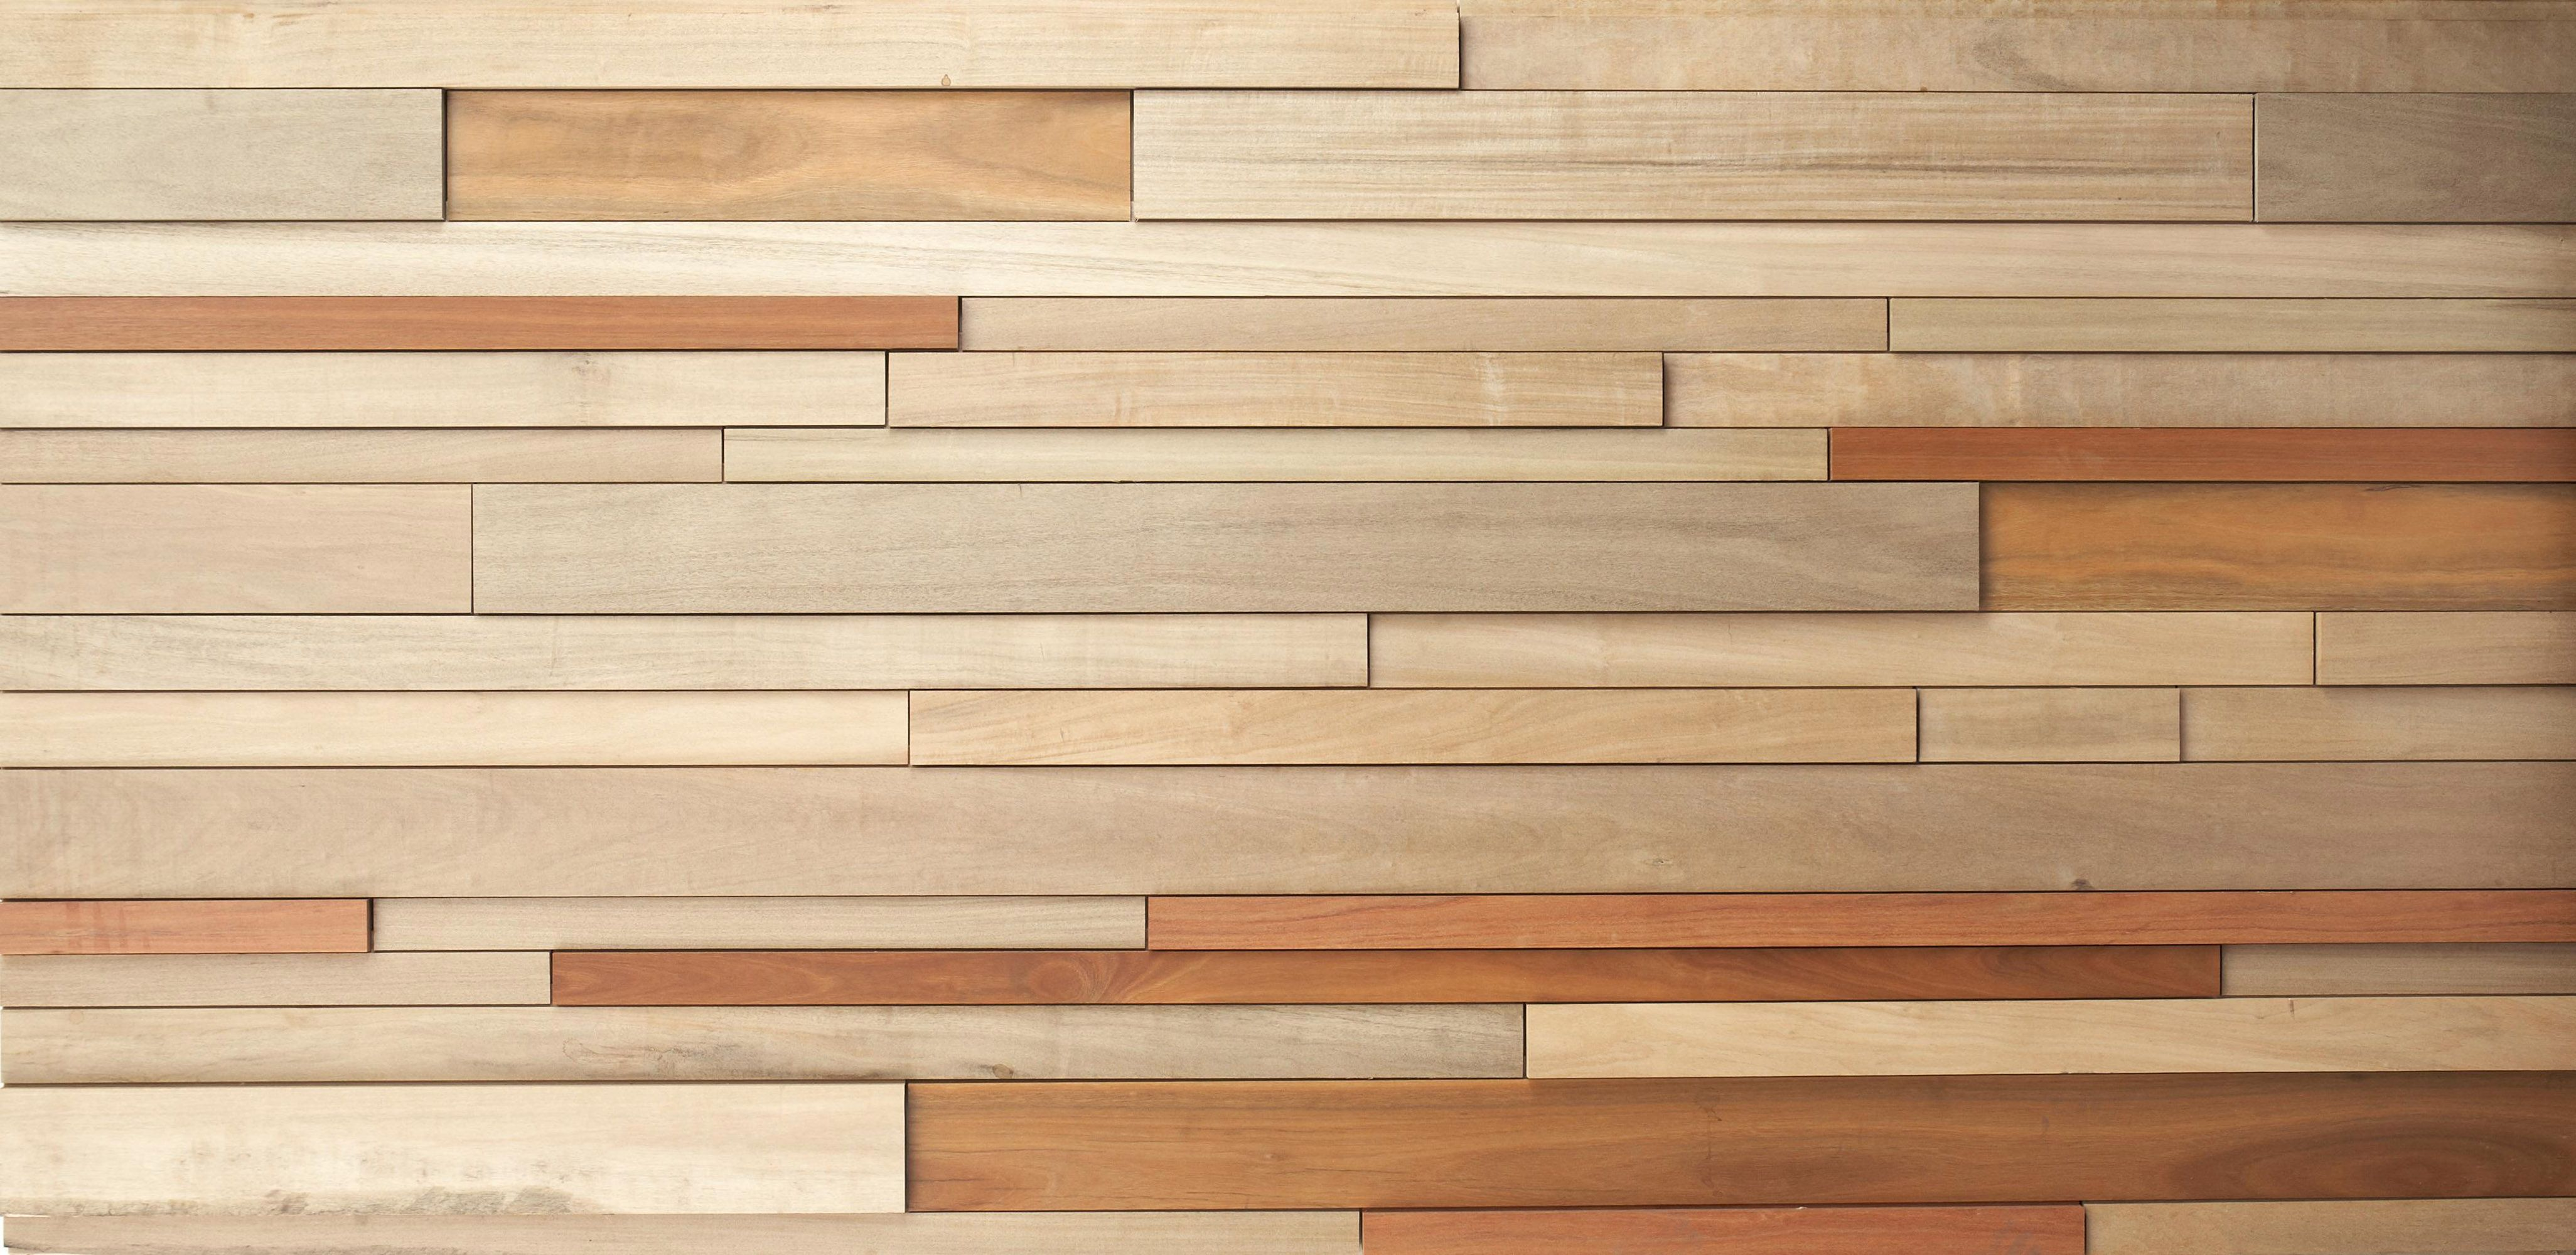 Expression cladding woodform rooms wooden wall - Wooden cladding for exterior walls ...